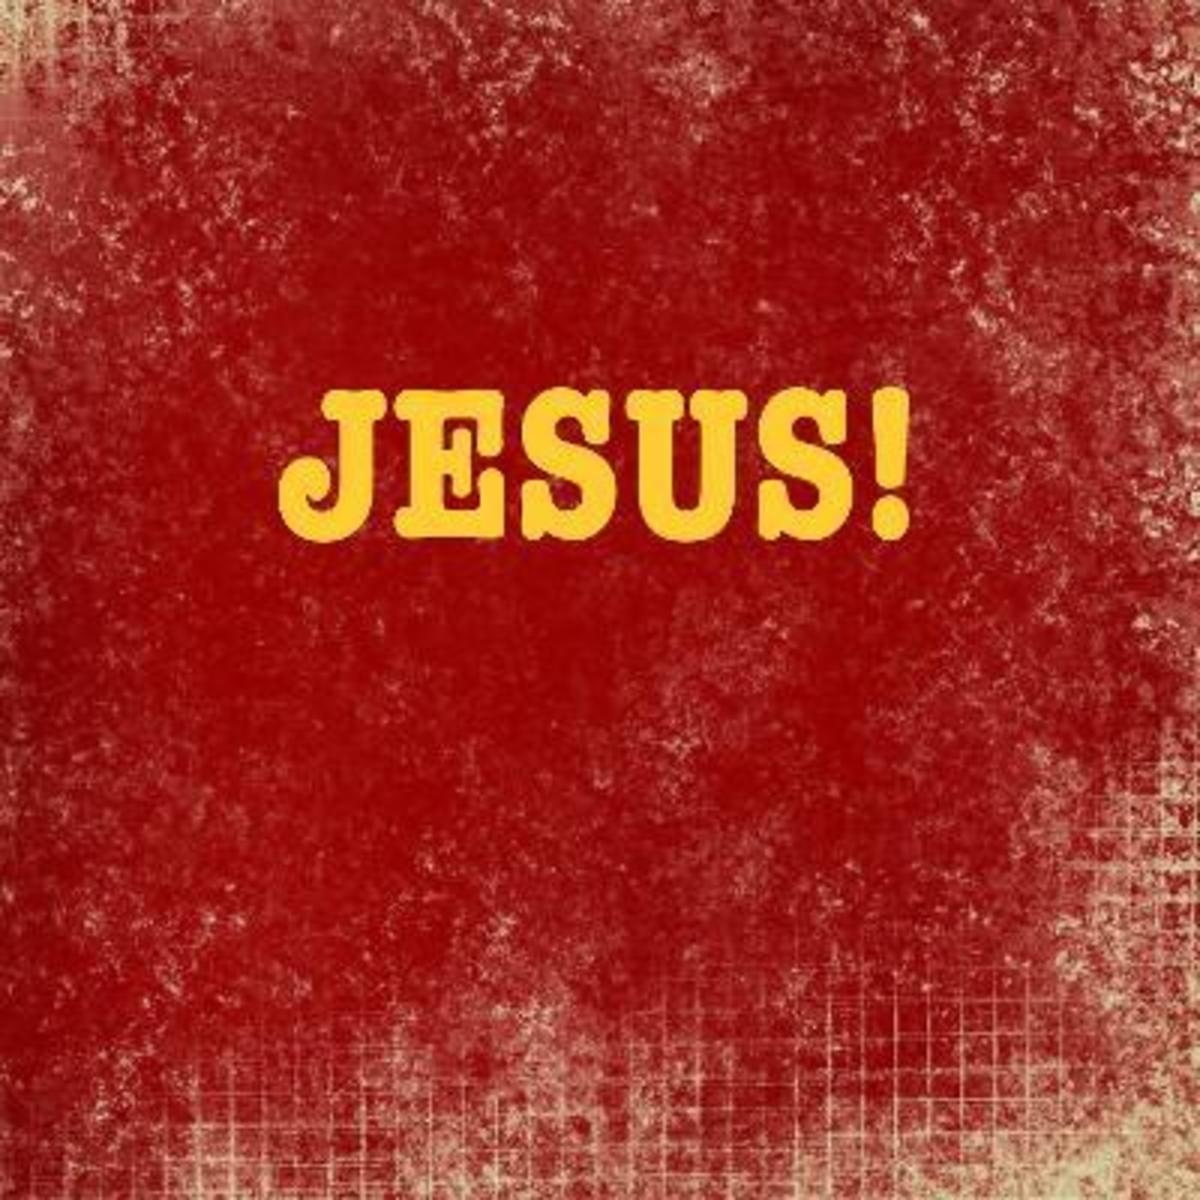 what-happens-when-you-call-on-the-name-jesus